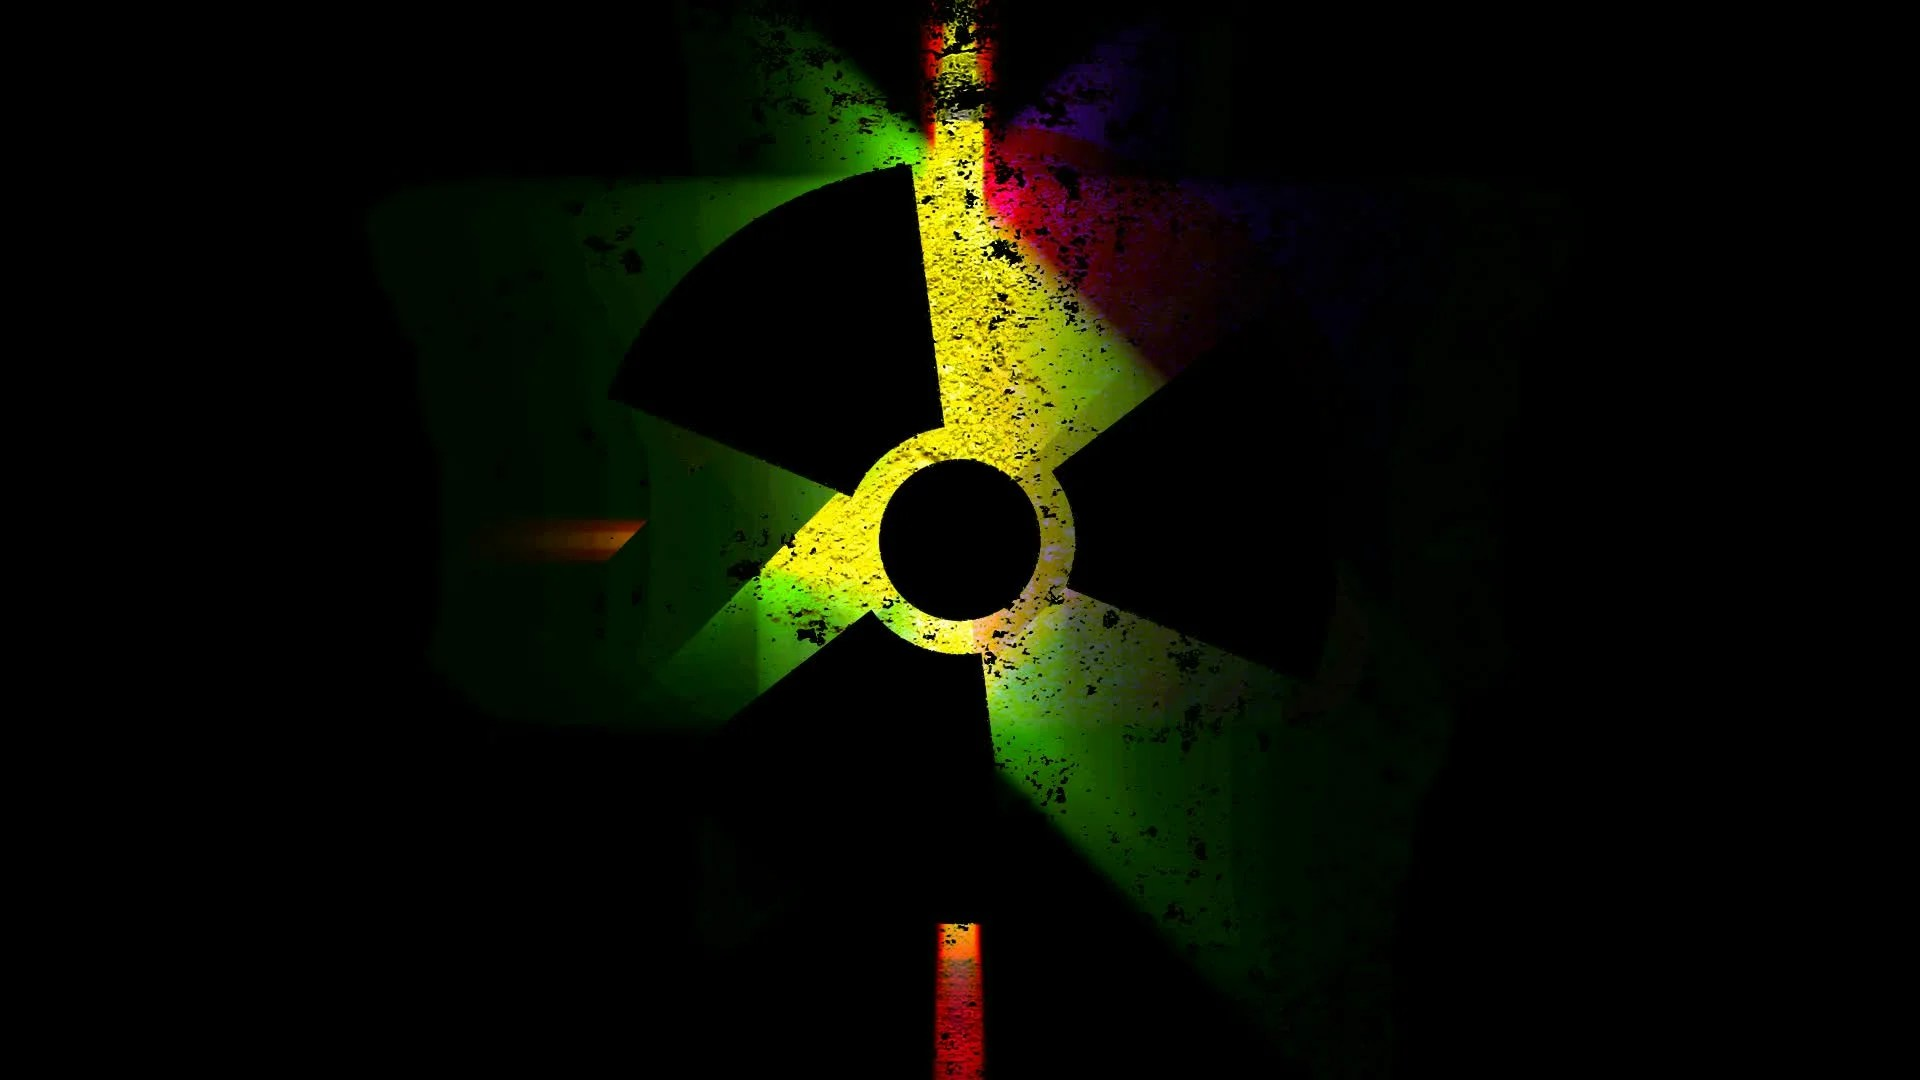 3d Virus Wallpaper Radiation Nuclear Symbol On Video Clip 11495562 Pond5